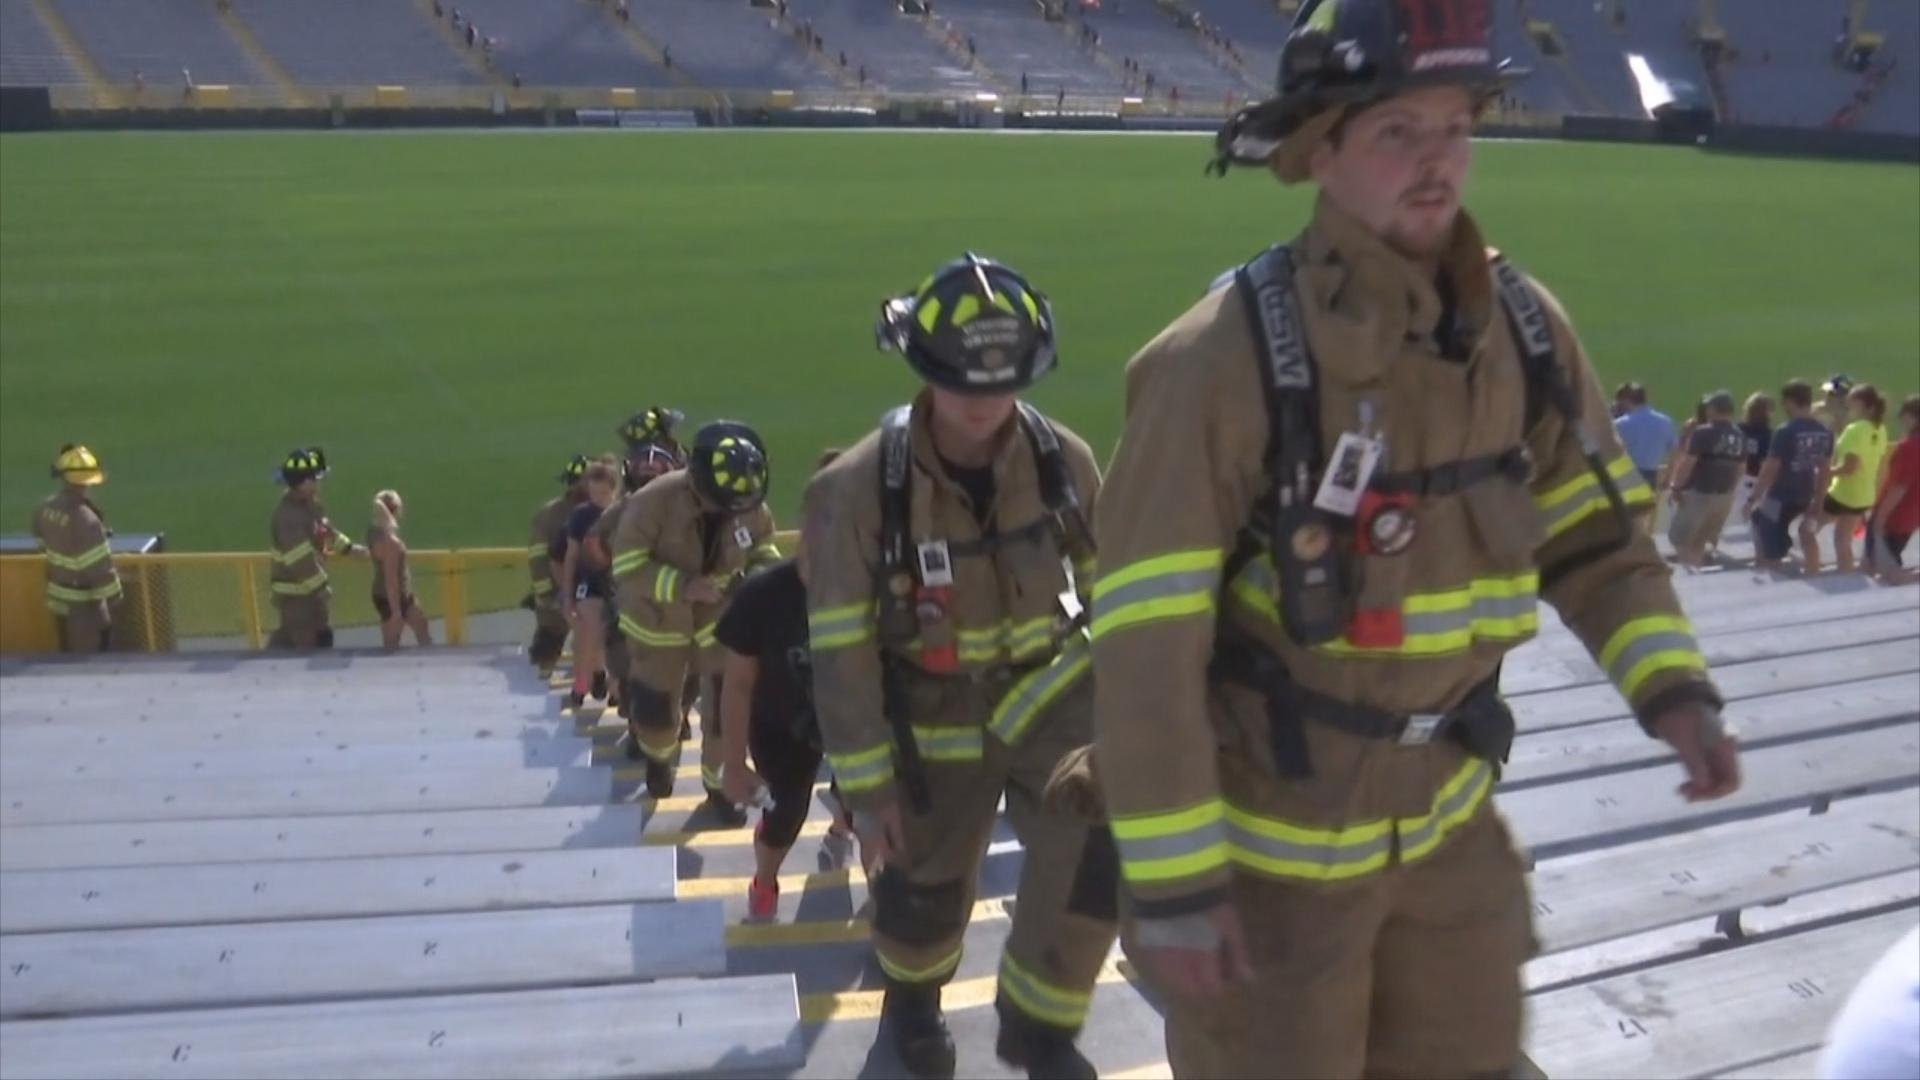 Firefighters climb the stairs at Lambeau Field to honor 9/11 fallen firefighters